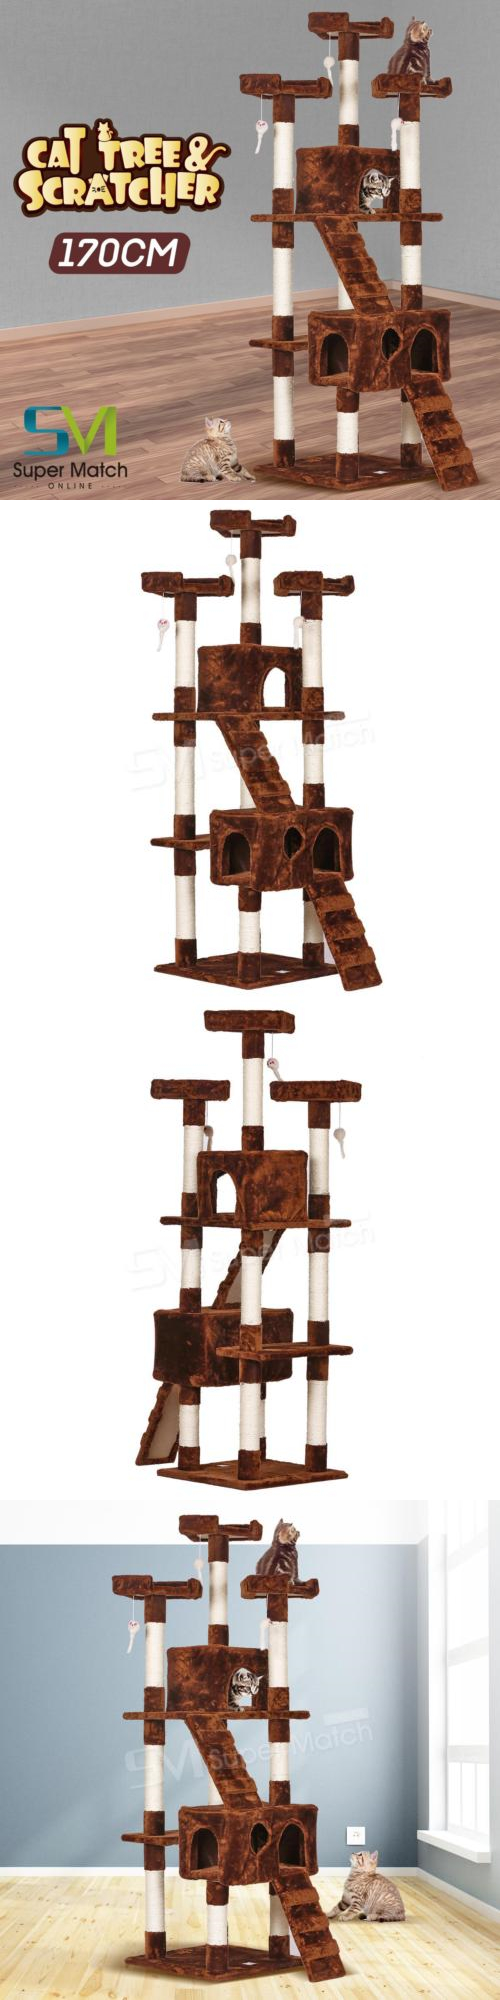 Animals Cats: Pet Scene 67 Cat Tree Tower Condo Furniture Scratch Post  Kitty House Play